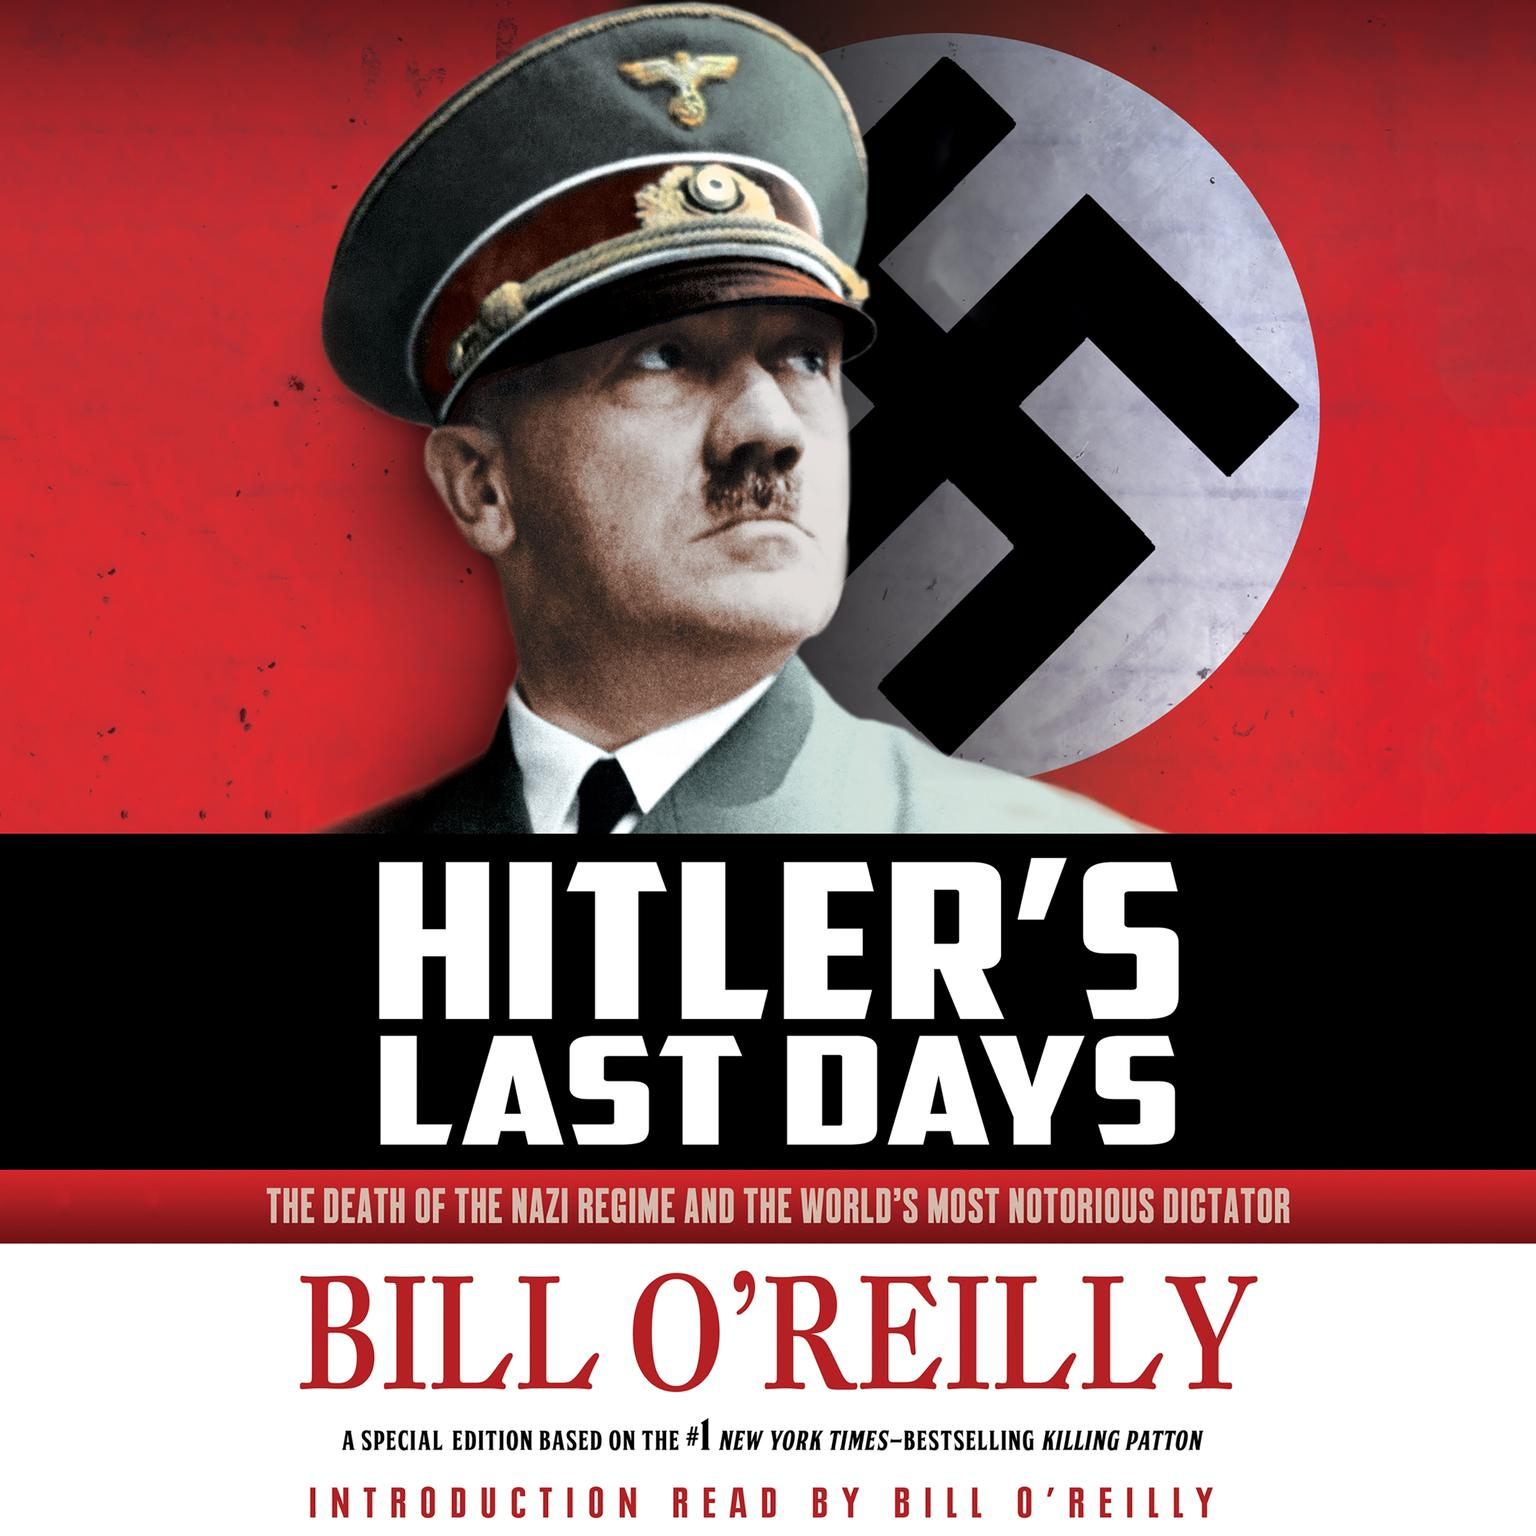 Hitlers Last Days: The Death of the Nazi Regime and the Worlds Most Notorious Dictator Audiobook, by Bill O'Reilly